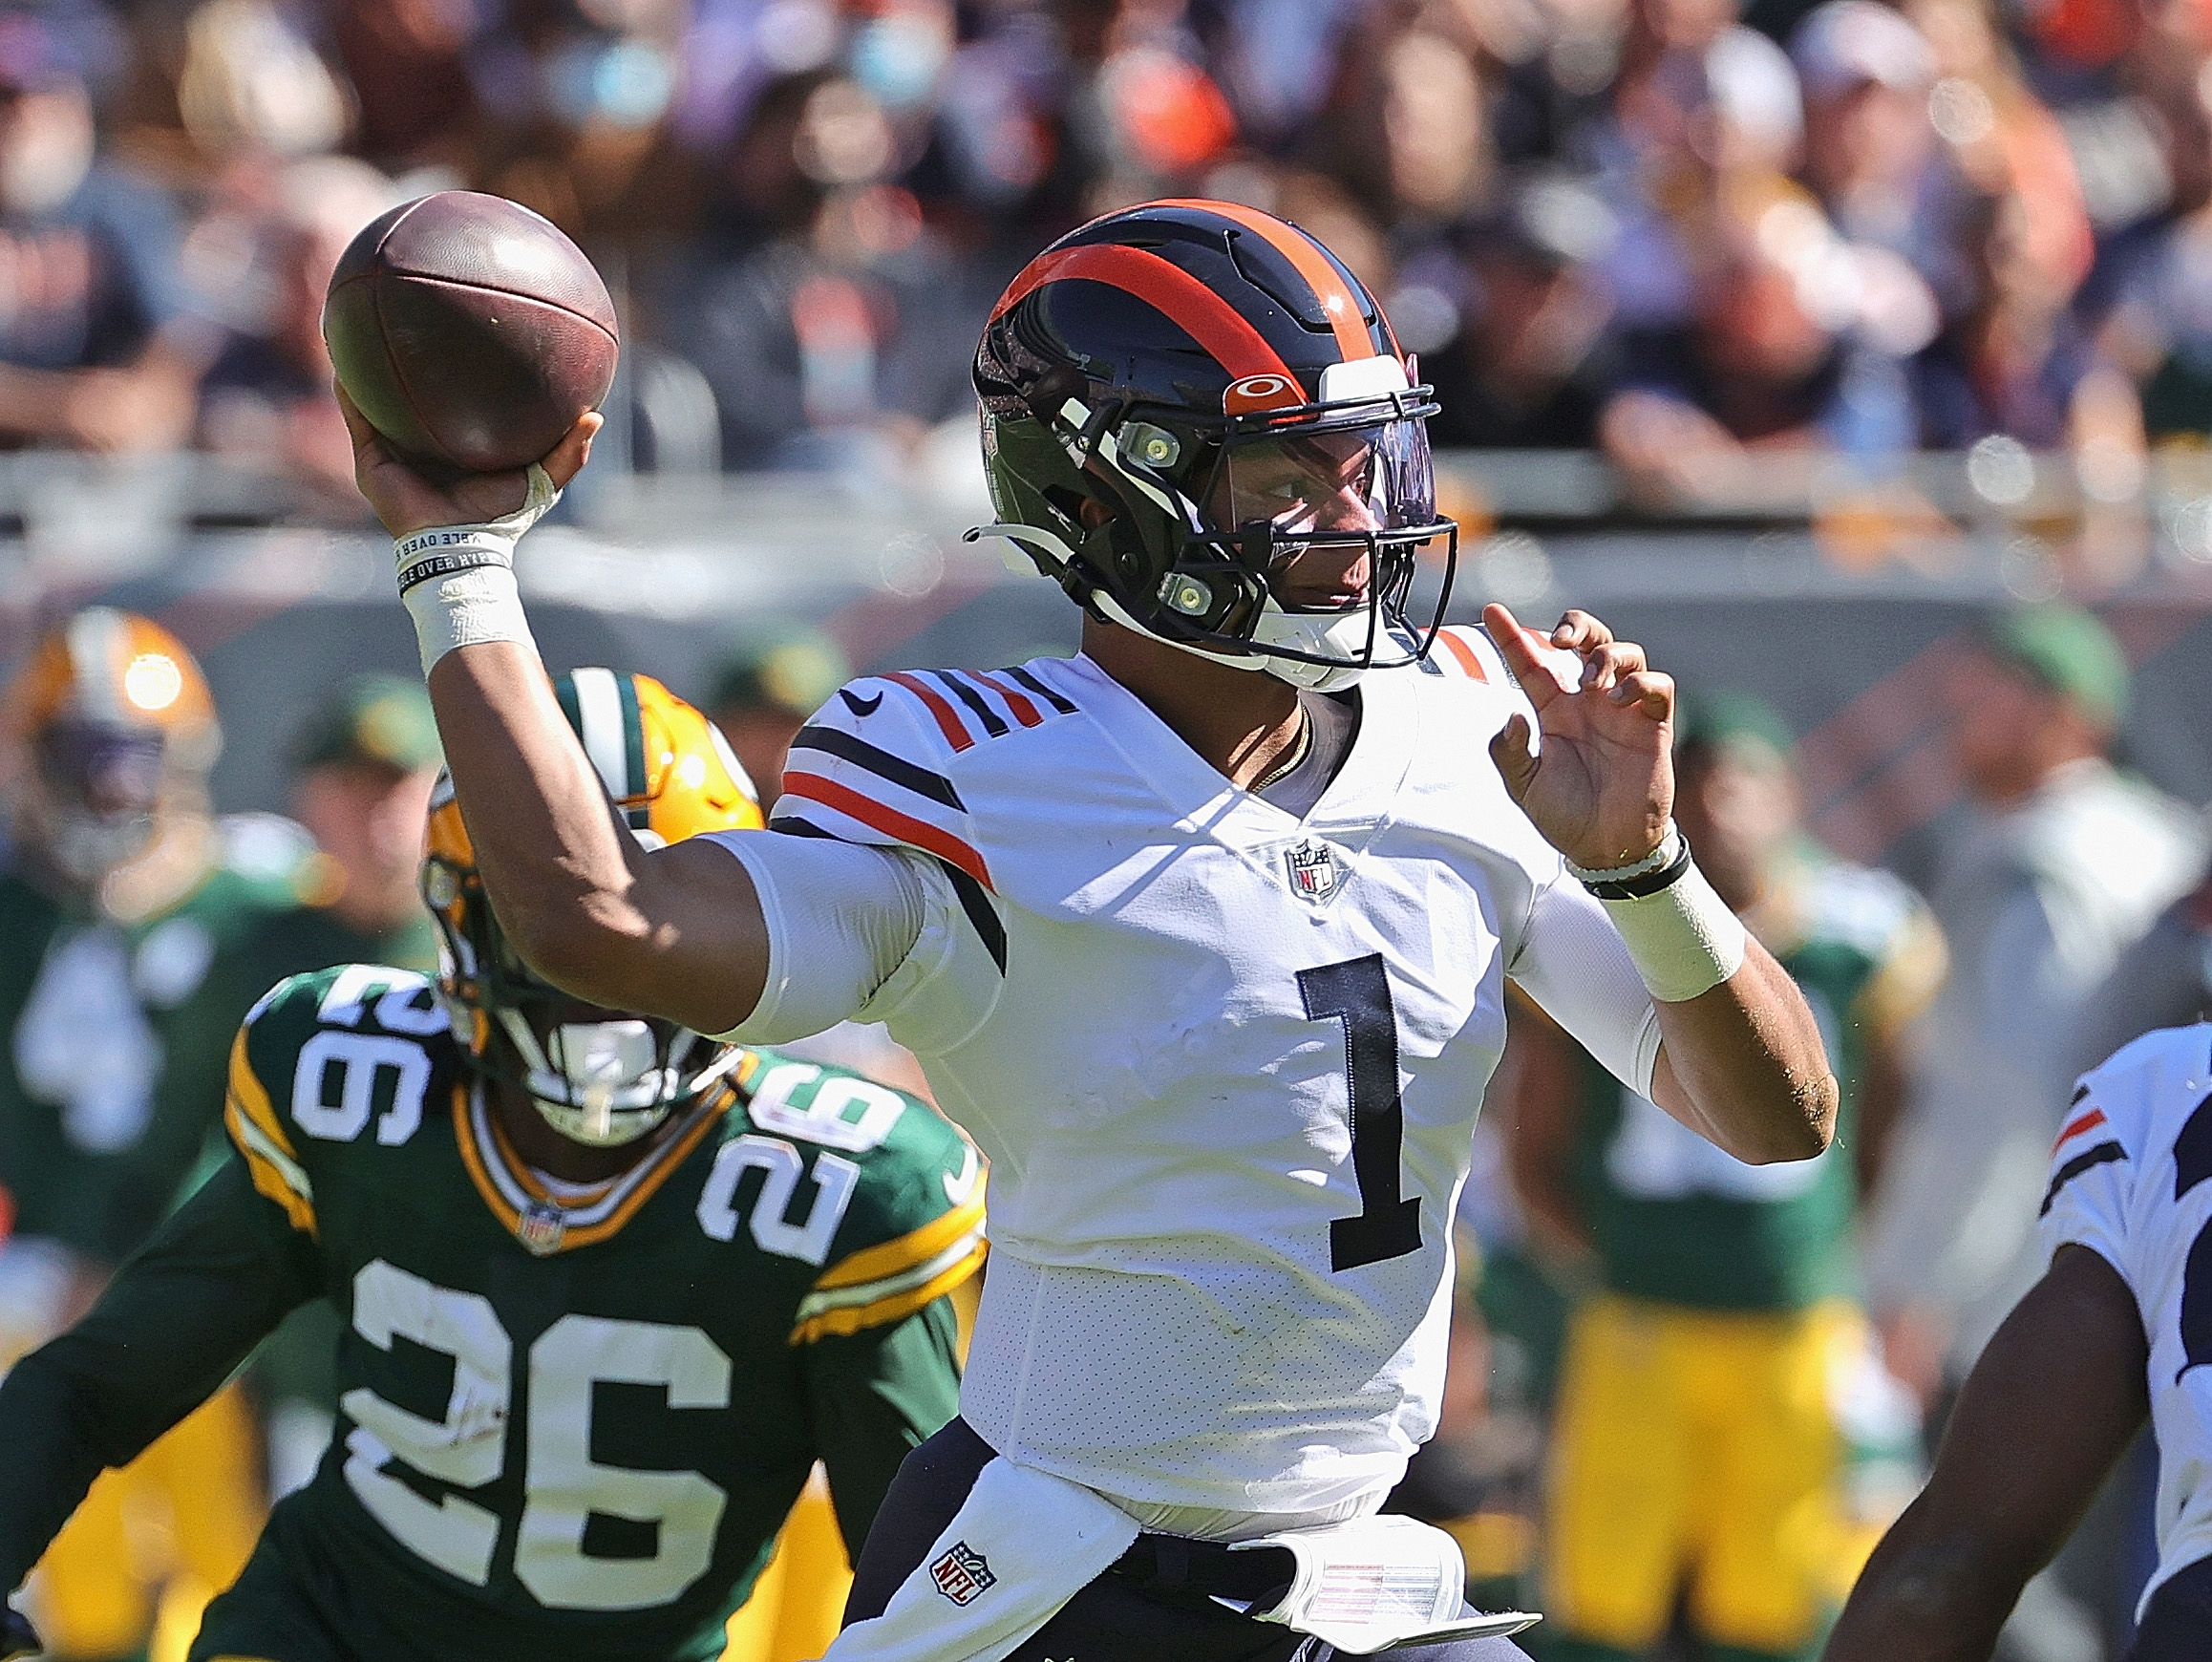 Bears quarterback Justin Fields completed 16-of-27 passes for 174 yards, one touchdown and one interception for a 75.2 passer rating against the Packers on Sunday. He also rushed six times for 43 yards.